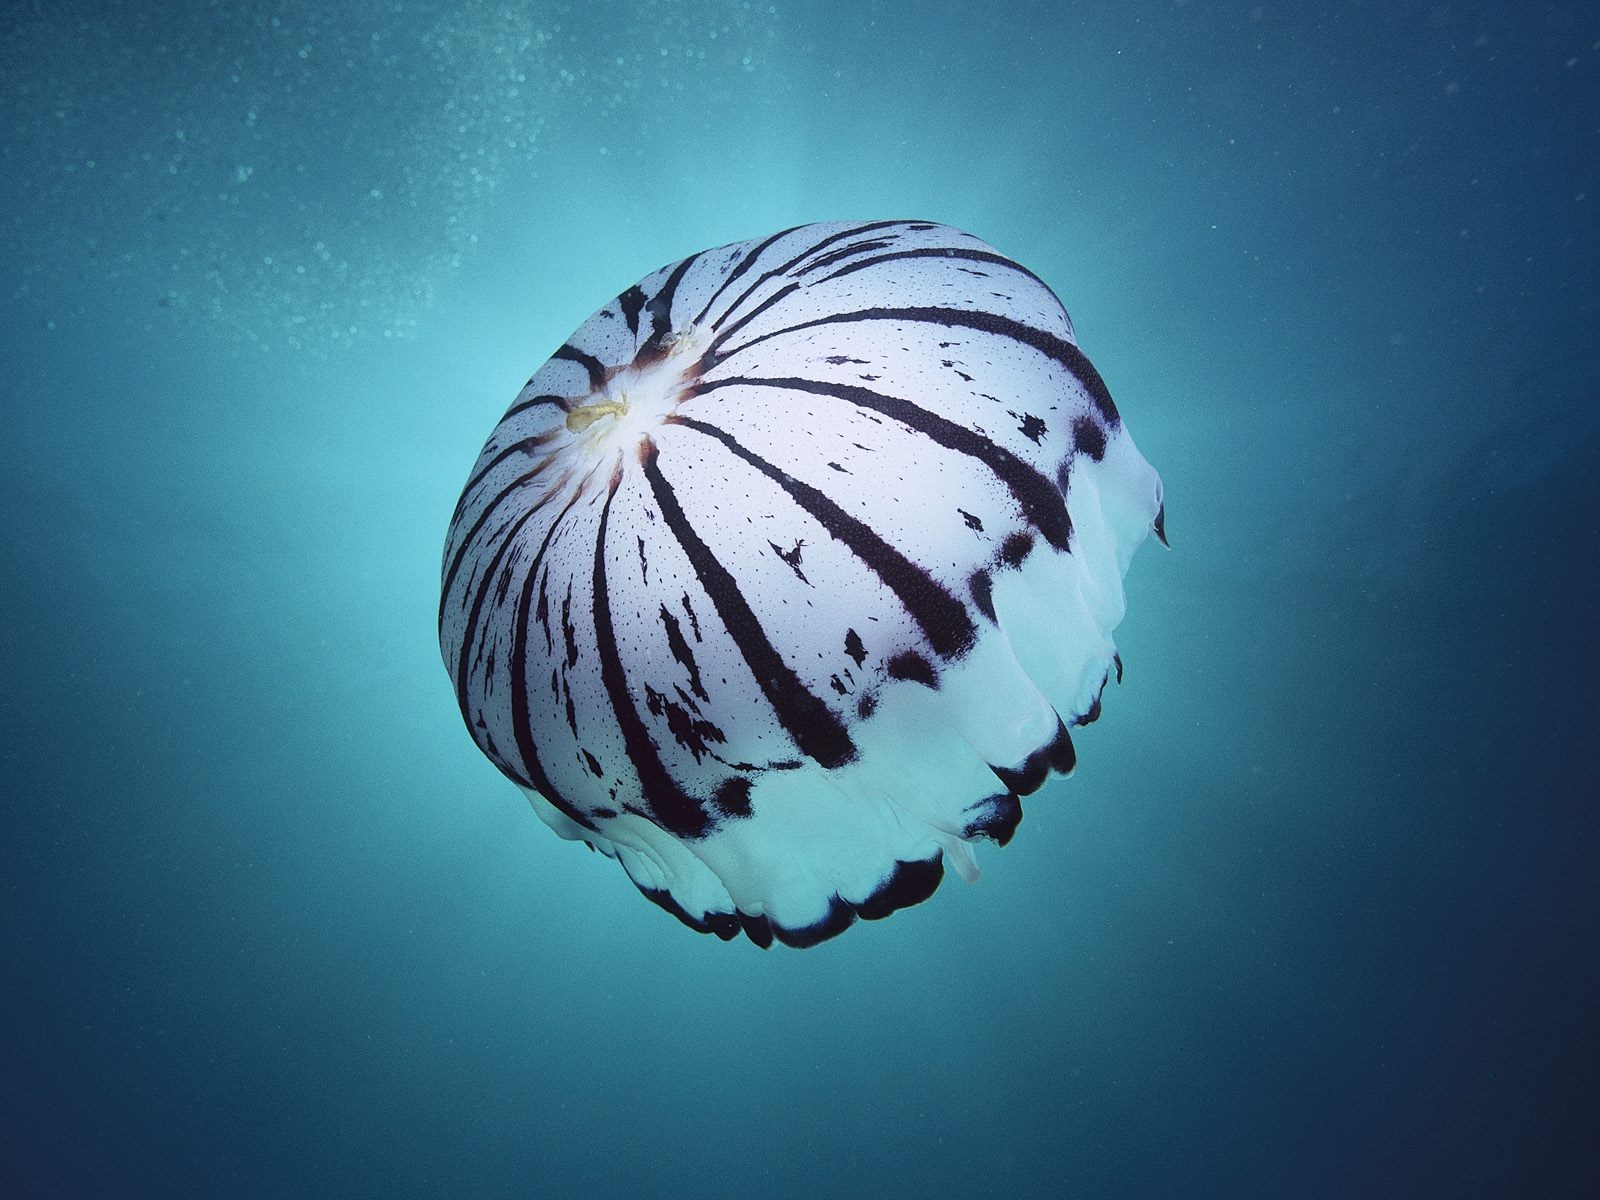 Giant Arctic jellyfish underwater photo